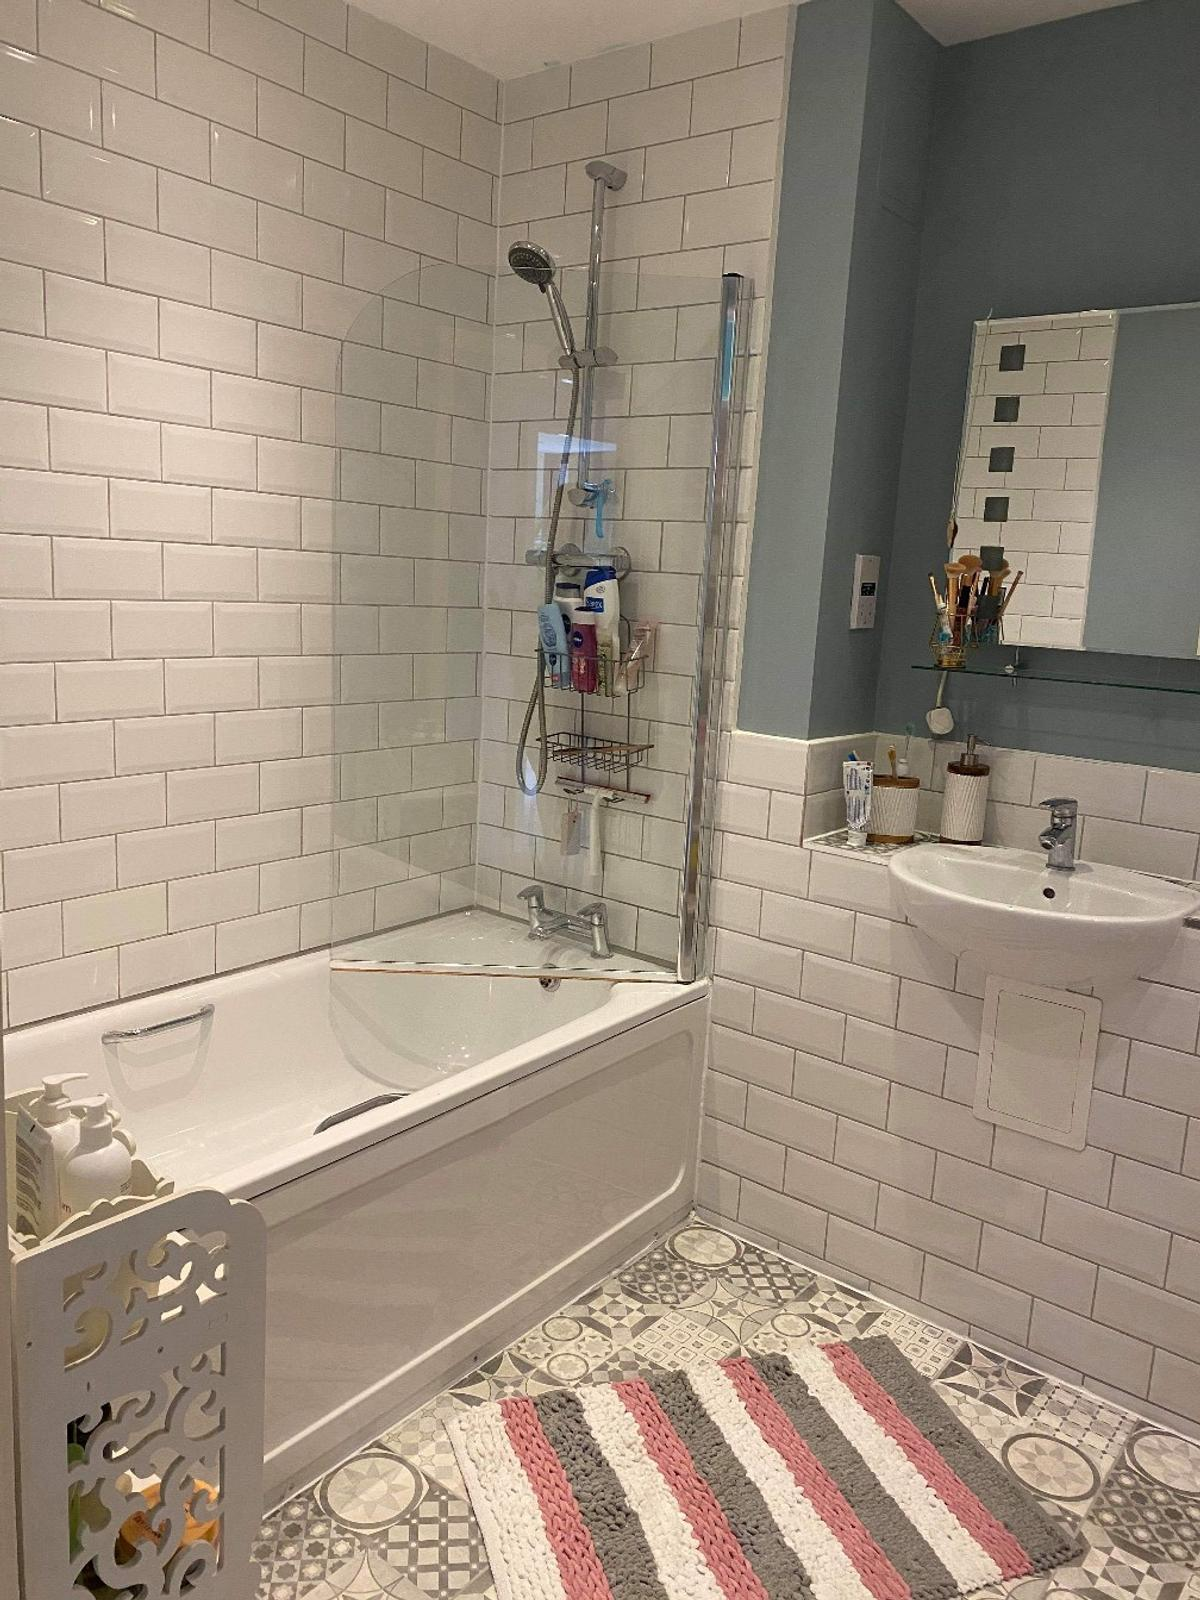 ⚡⚡We specialise in laying marble granite, mosaic, ceramic and porcelain tiles to renovate all commercial properties, giving your old kitchen/bathroom/stairs a fresh look or simply make the necessary correction or repairs. Helping you to choose a right materials is also a part of our service. Our aim is attention to the details, high standards and customer satisfaction! If you care about solid work time and money please call us for a free consultation 07554655584 Piotr⚡⚡